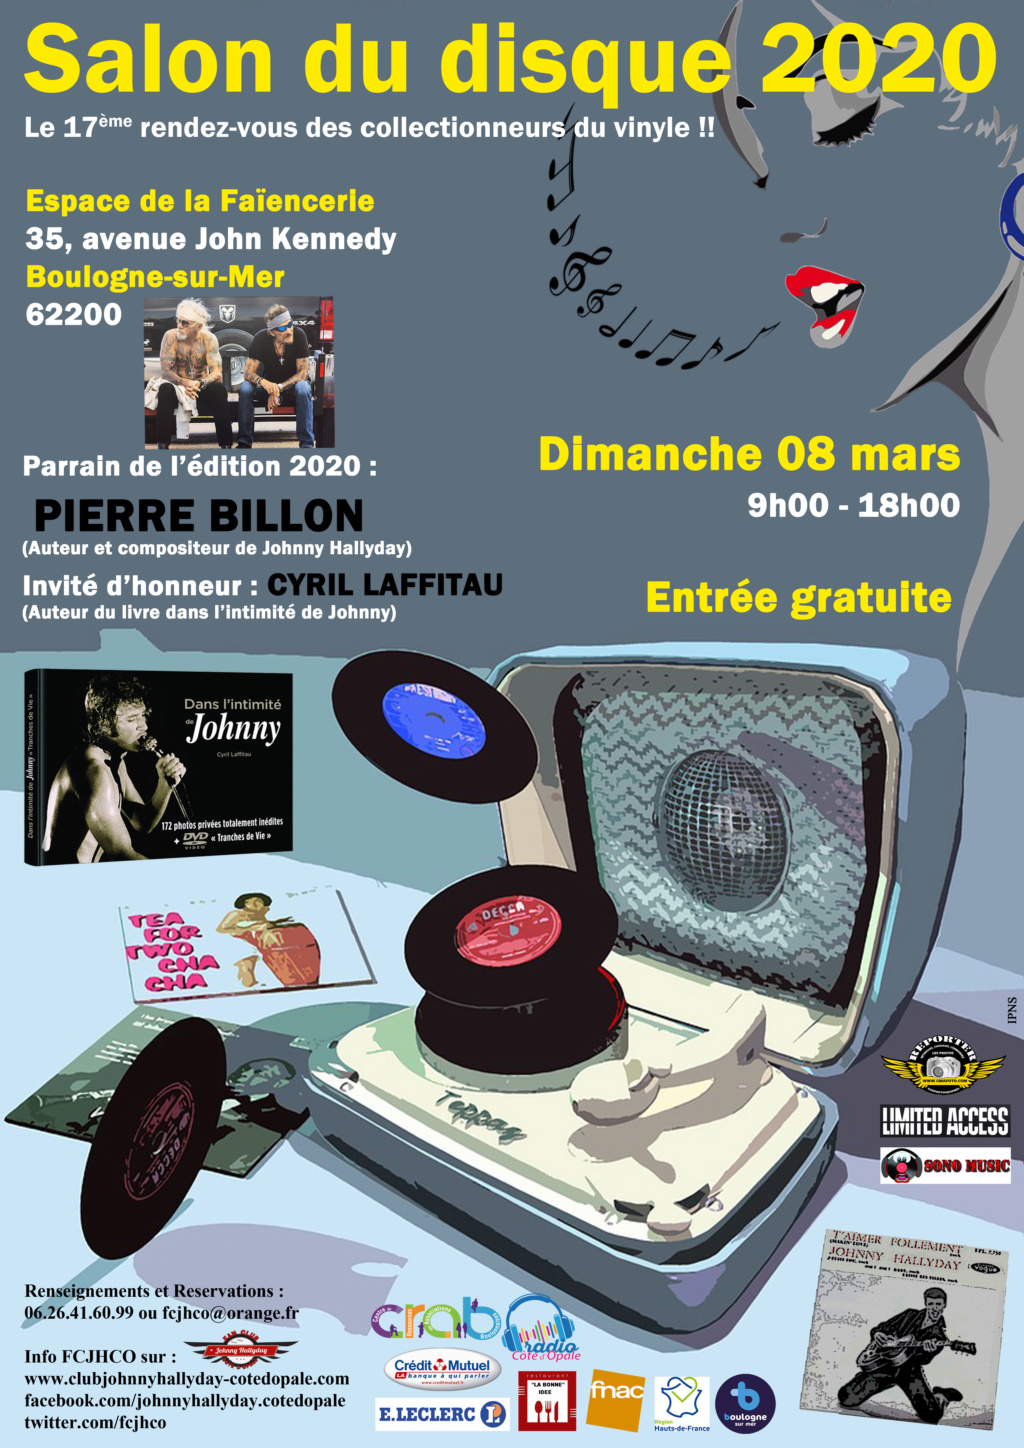 Le gros week-end de mars du Fan Club Johnny Hallyday Côte d'Opale (FCJHCO) Salon_13